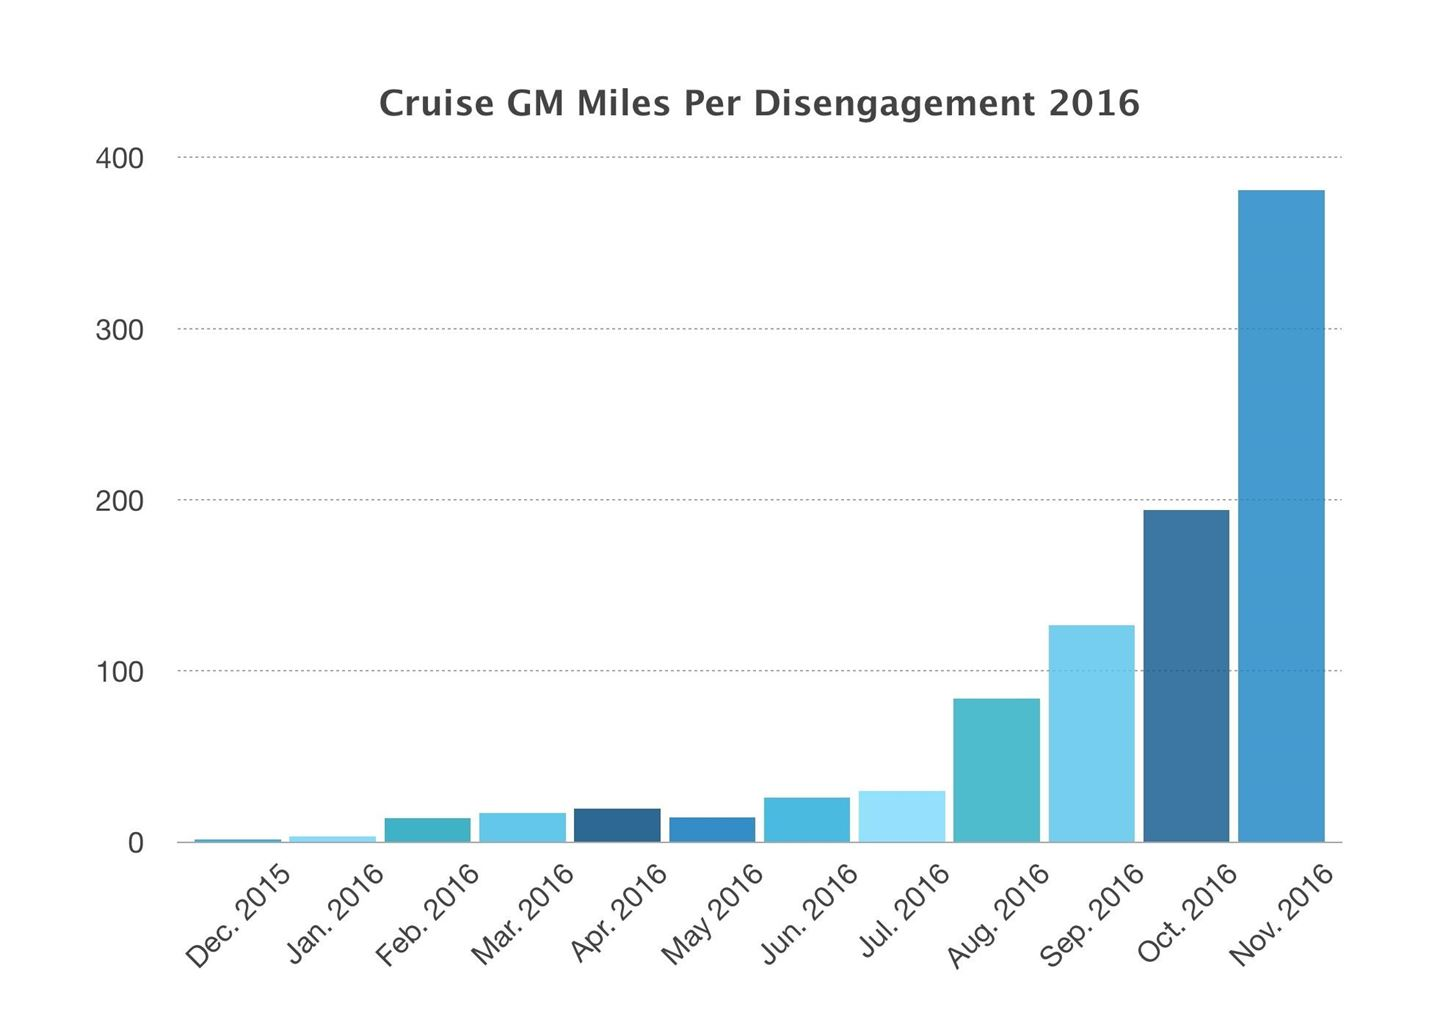 2016 Disengagement Reports Show Waymo Absolutely Crushing the Competition on Every Single Metric